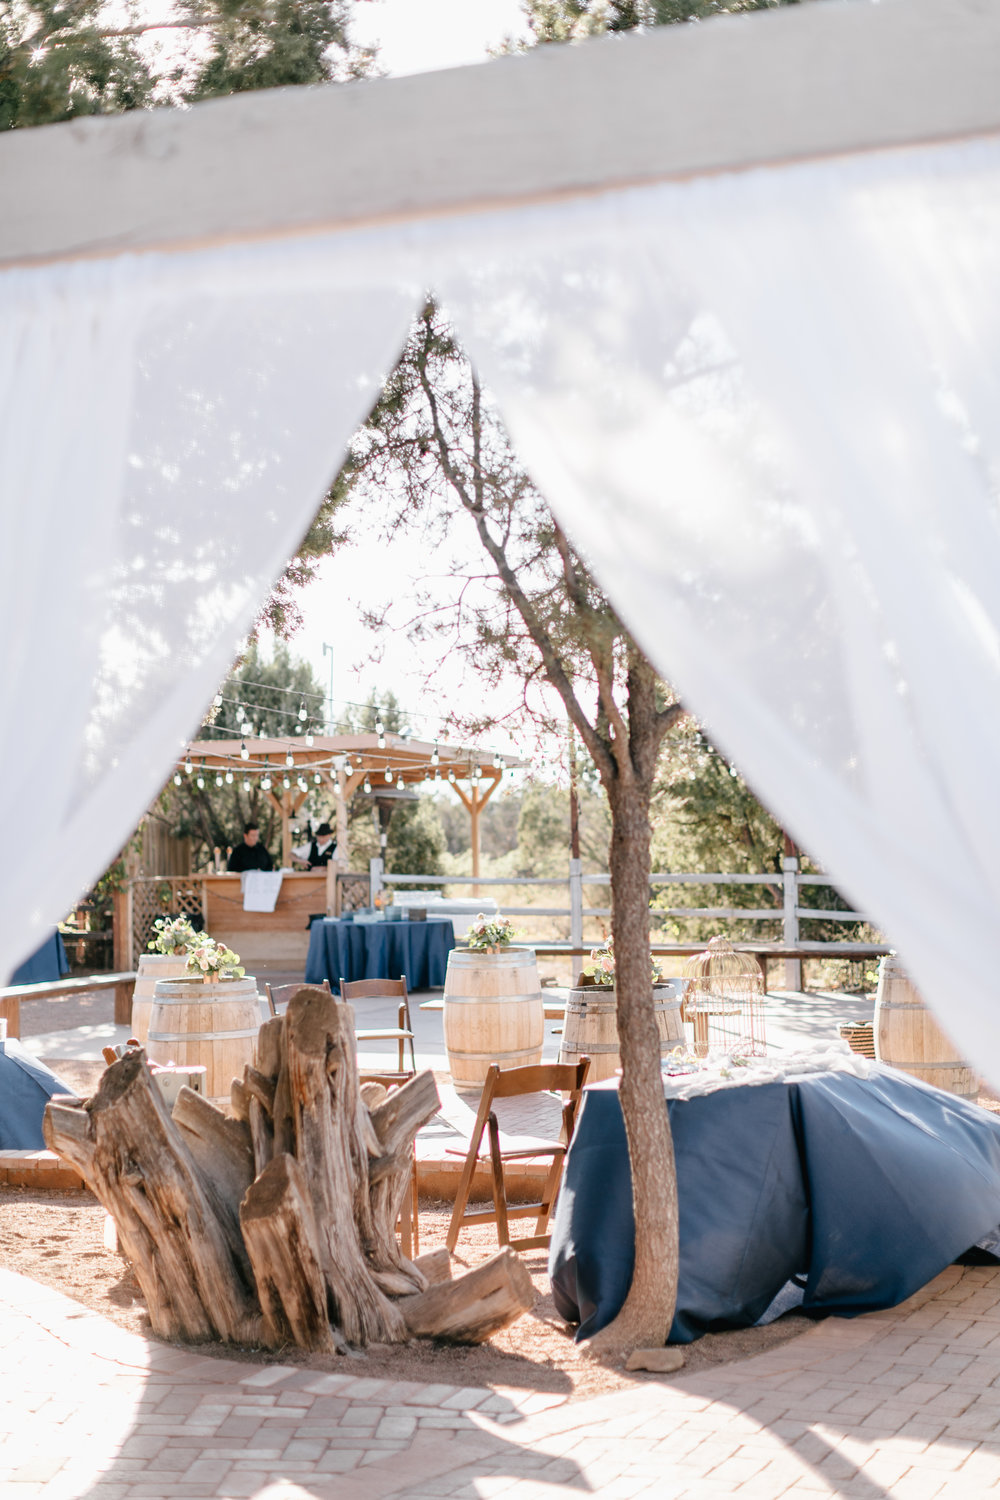 An Intimate Sedona Wedding Nestled in the Arizona Red Rocks  - Tremaine Ranch - AZ Arizona Wedding & Event, Vintage, Furniture, Tableware, & Specialty Rentals in Phoenix, Tucson, Flagstaff, Sedona, Tempe, Chandler, Mesa, Gilbert, Prescott, Payson 5140.jpg